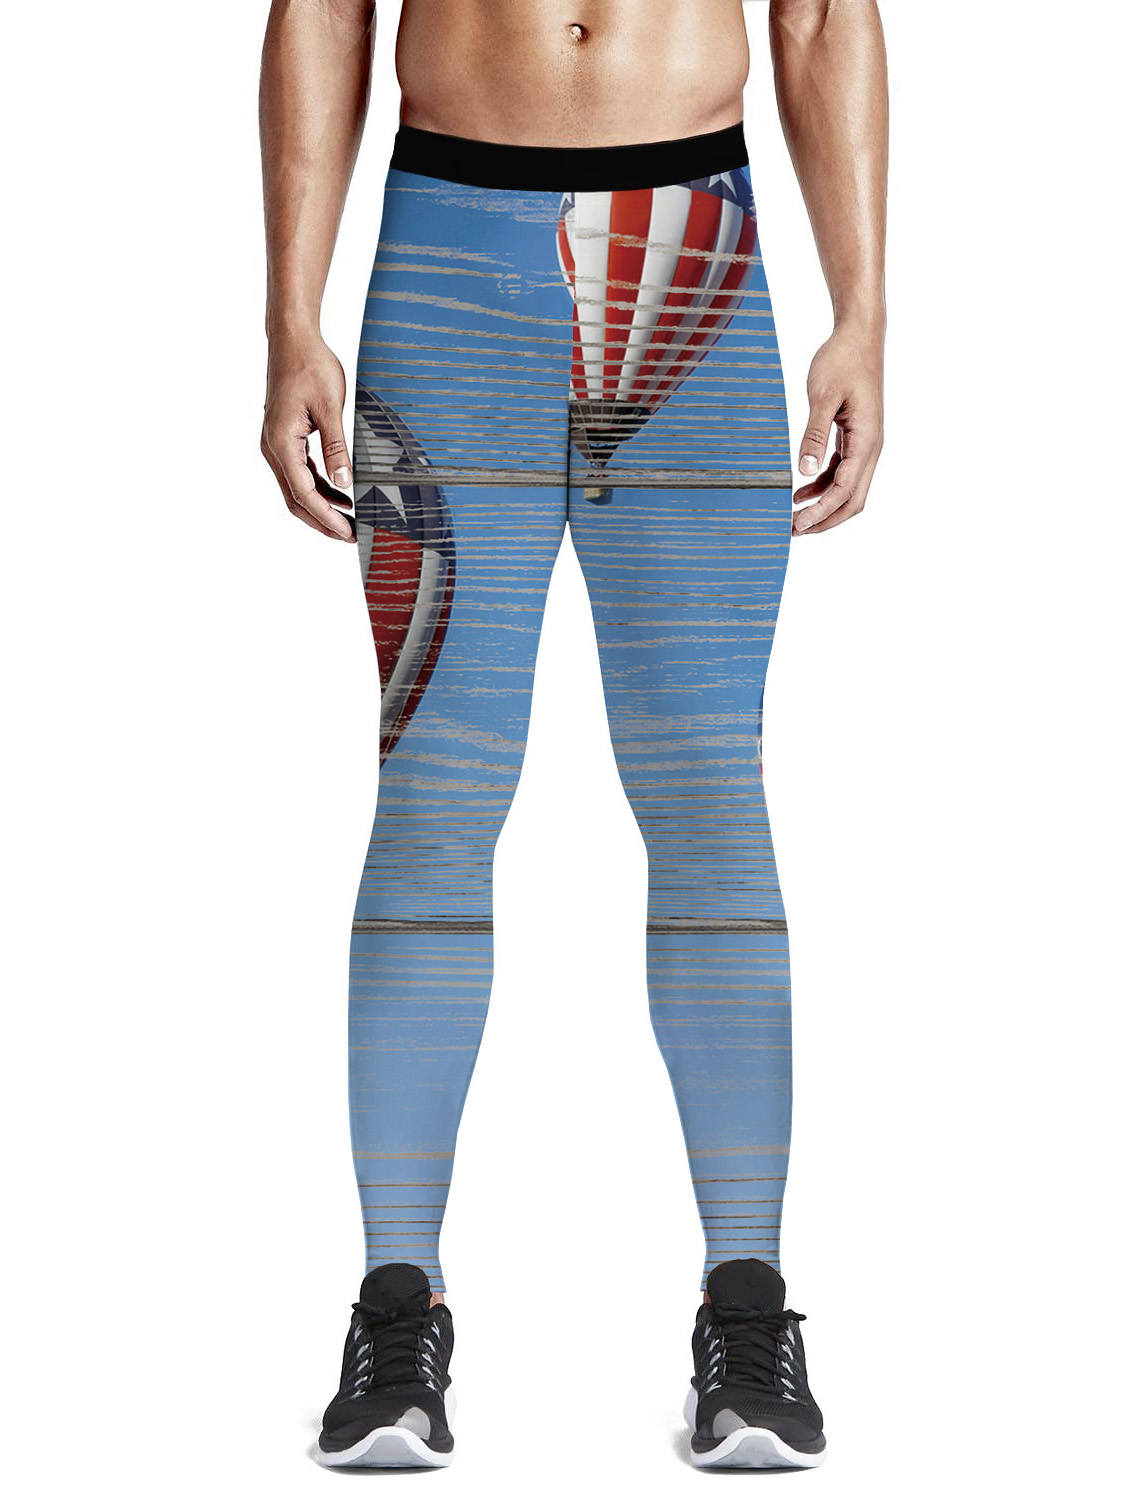 Hot Air Balloon In The Background Of The American Flag Pants Men Happy Valentine/'S Day Moisture-Wicking Buttery Soft High Waiste